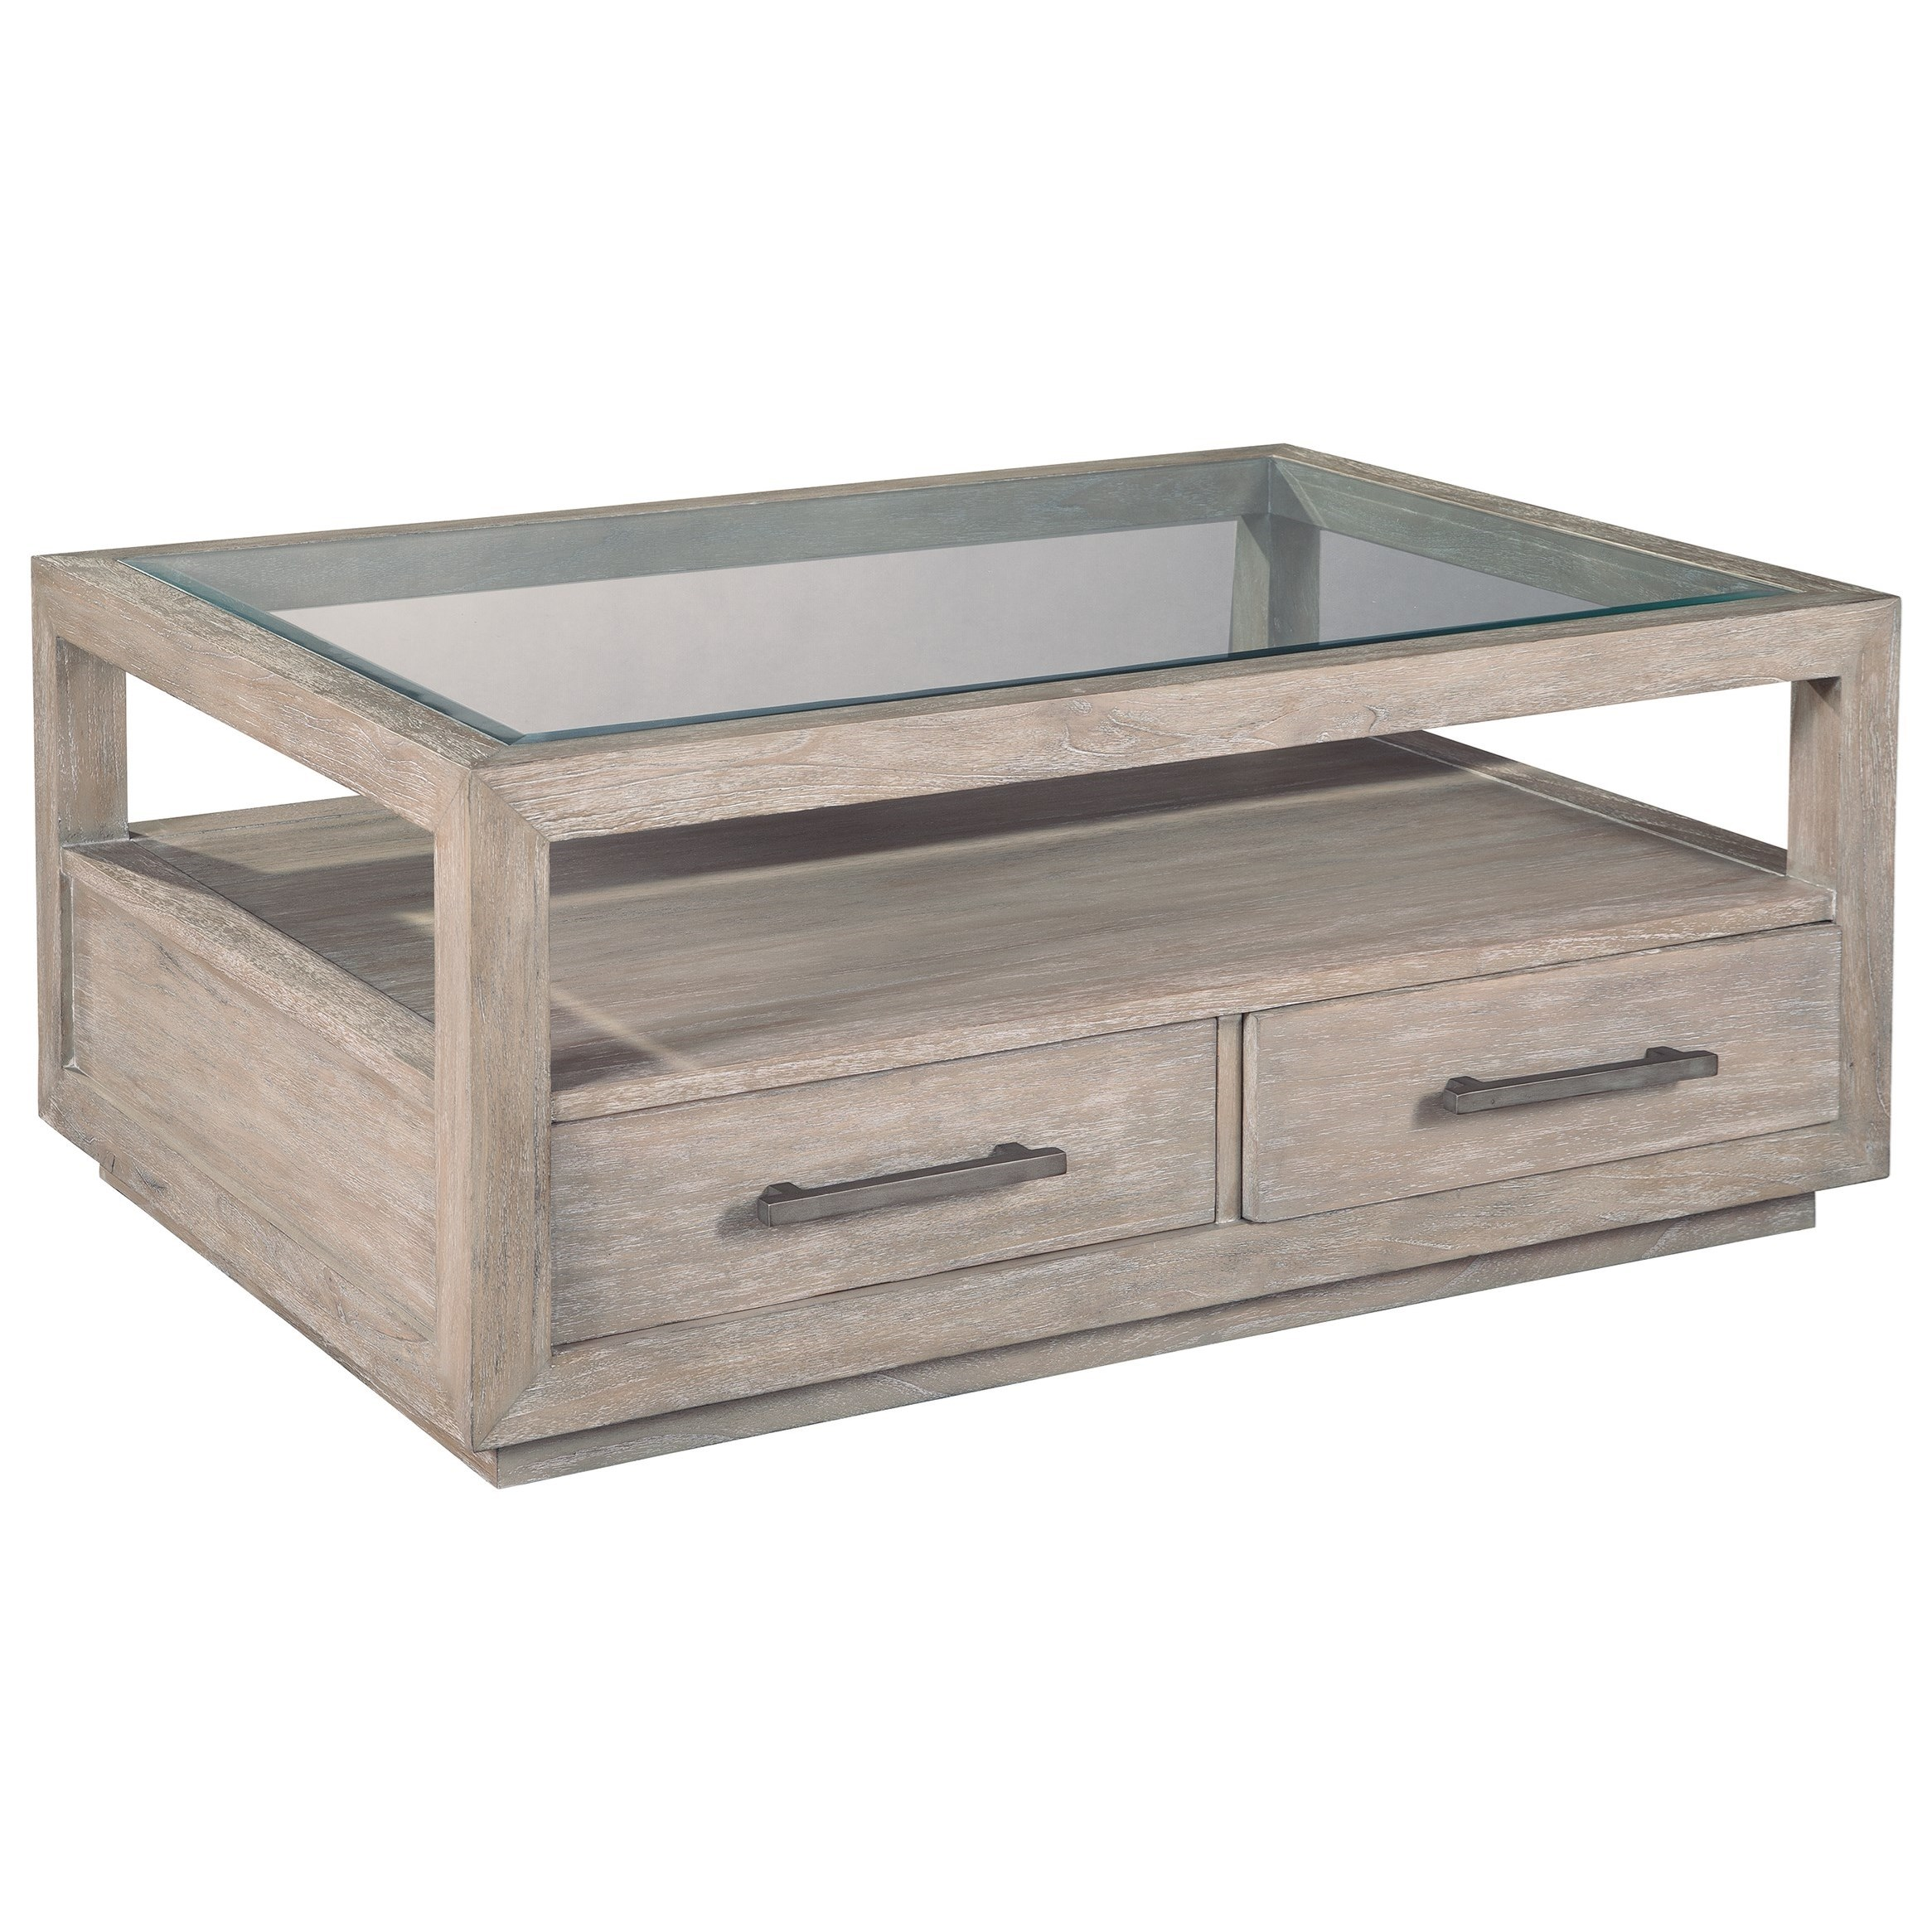 Hekman Berkeley Heights Two Drawer Rectangular Glass Top Coffee Table Howell Furniture Cocktail Coffee Tables